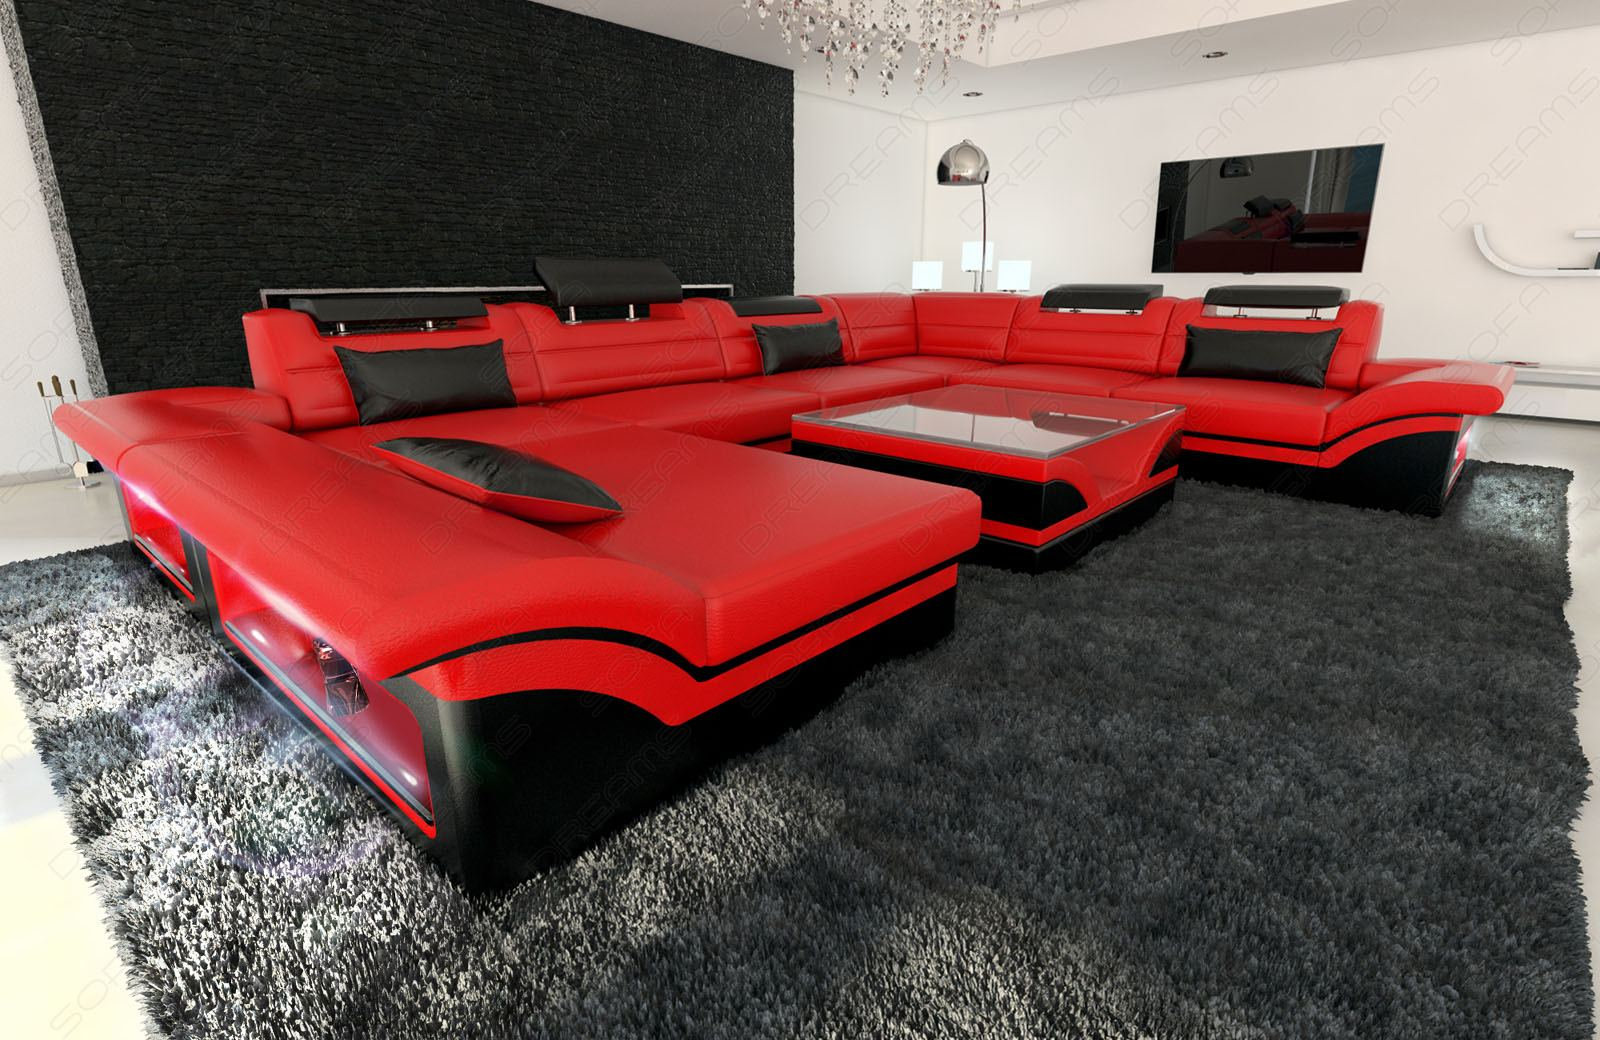 Leather sectional sofa enzo xxl red black ebay Rotes sofa kiel